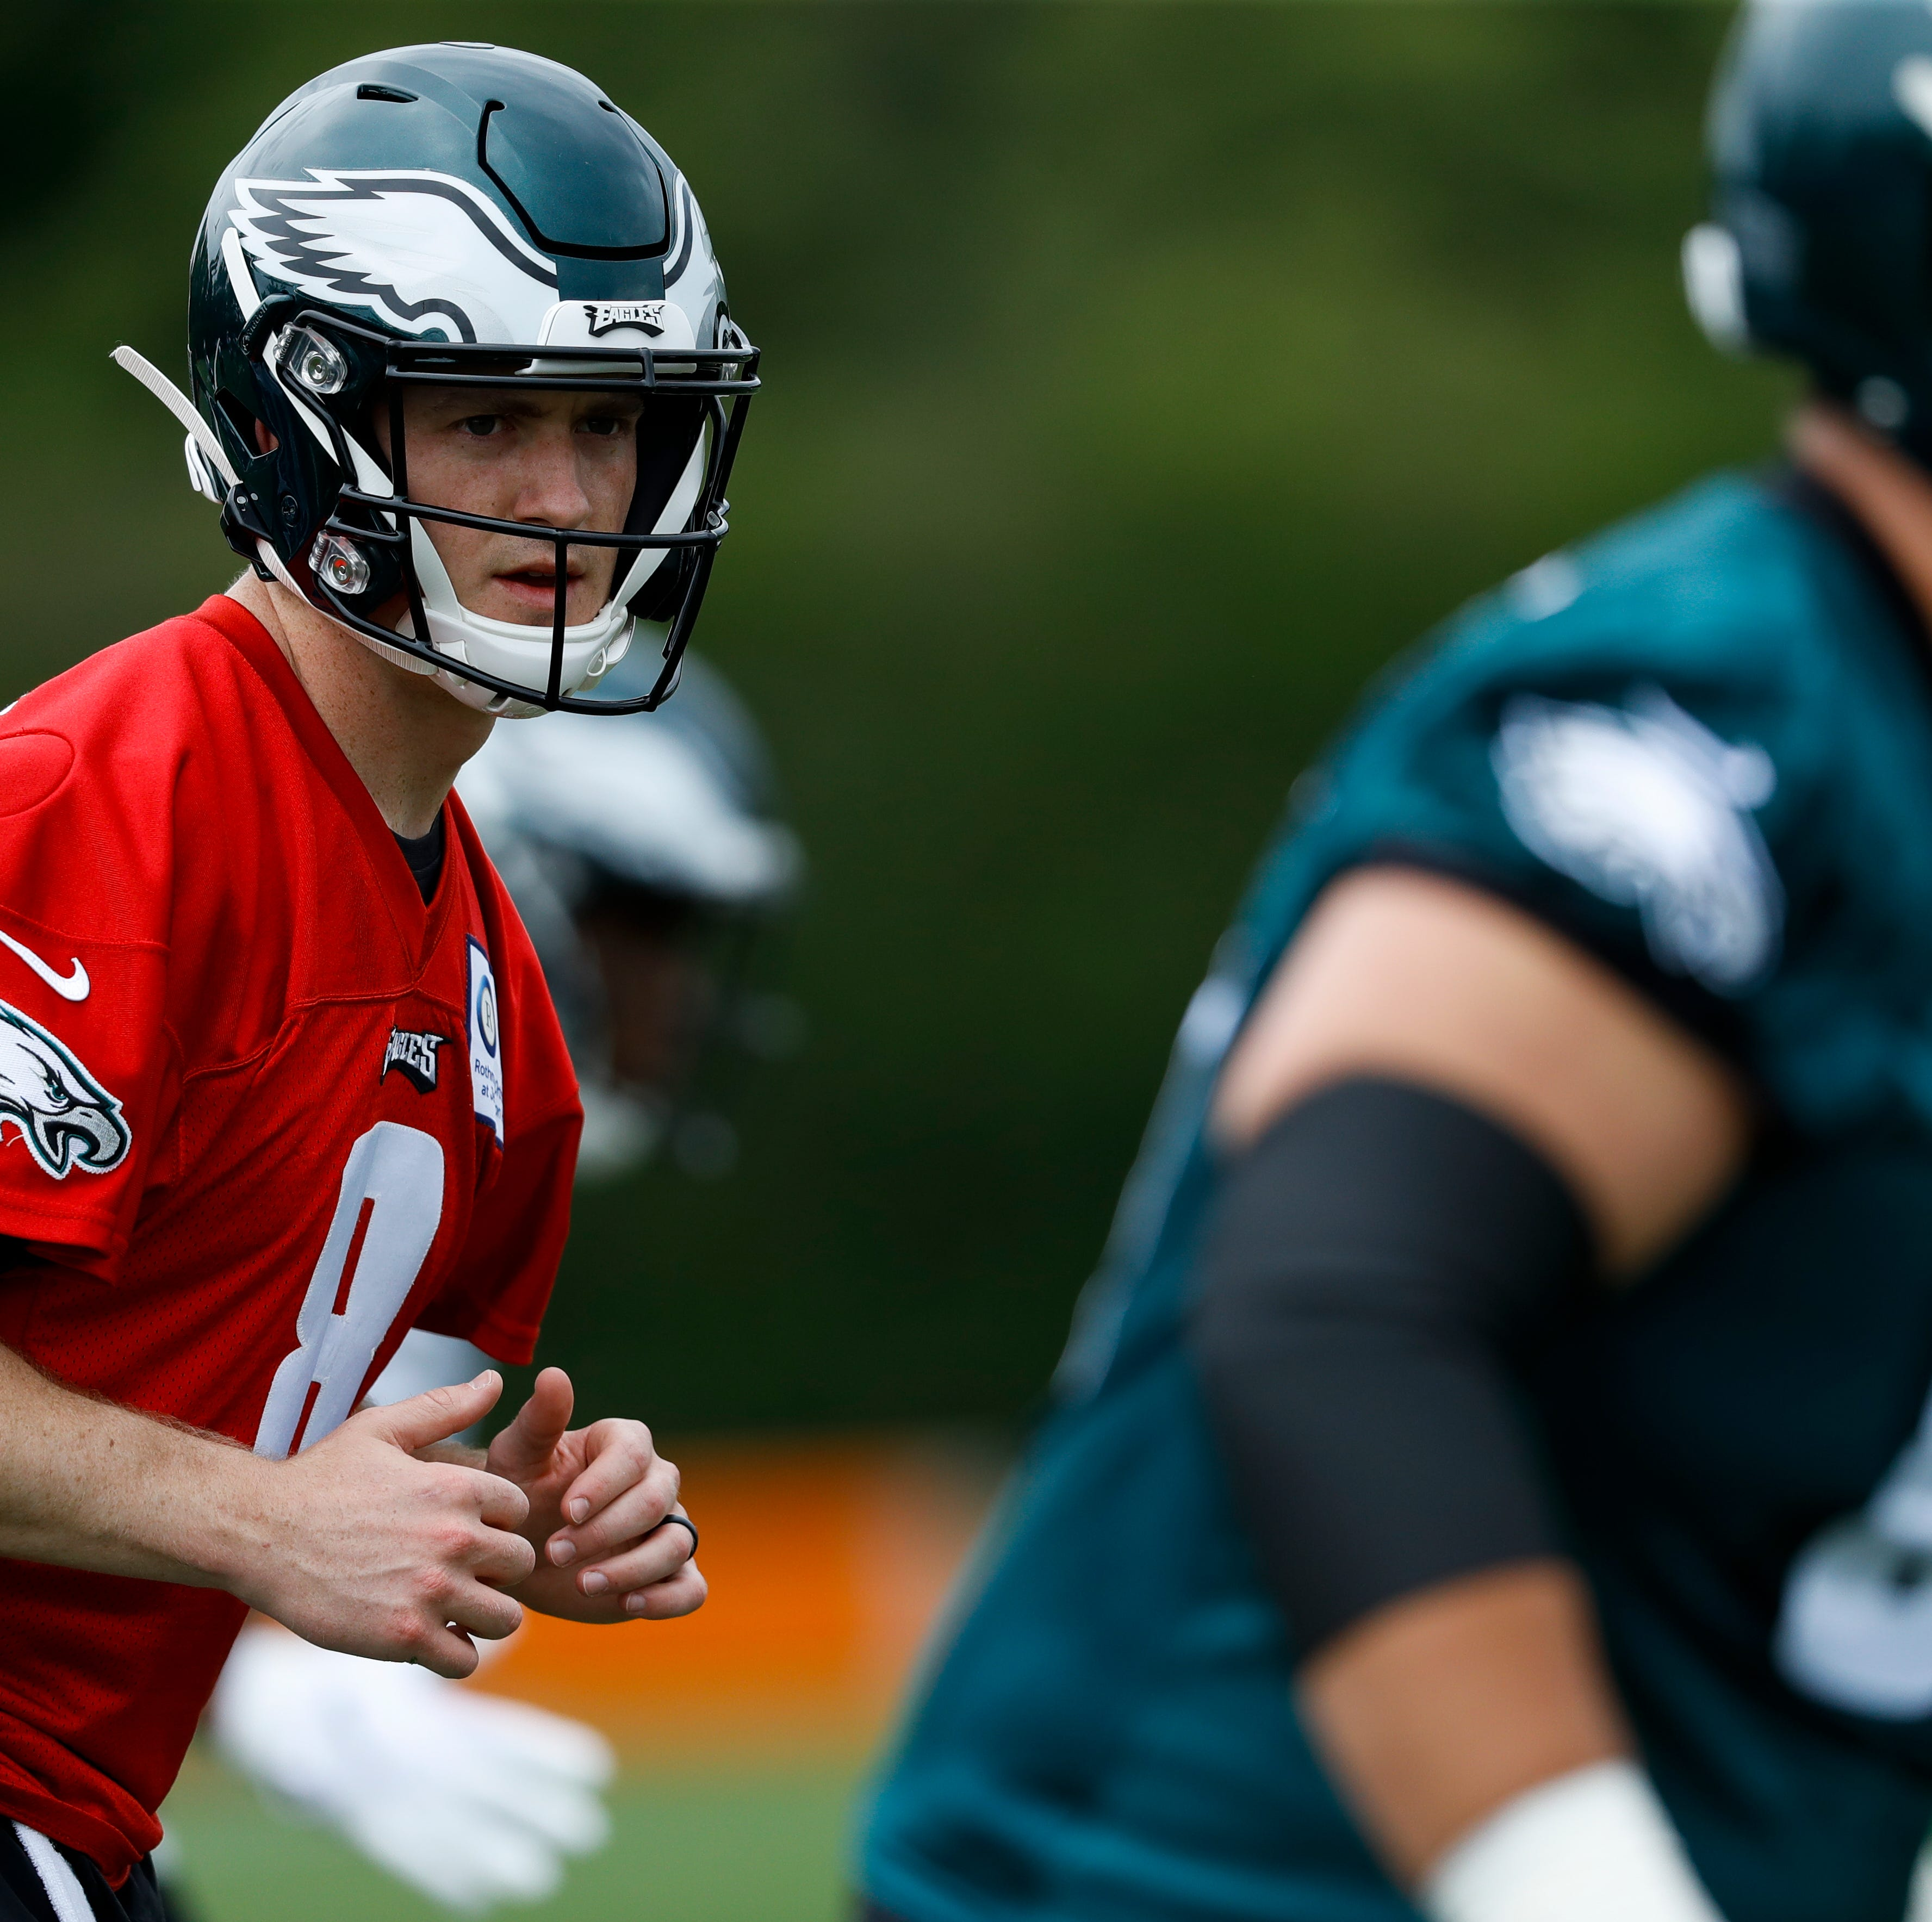 With Carson Wentz's status uncertain, Eagles rookie Clayton Thorson tries to learn quickly